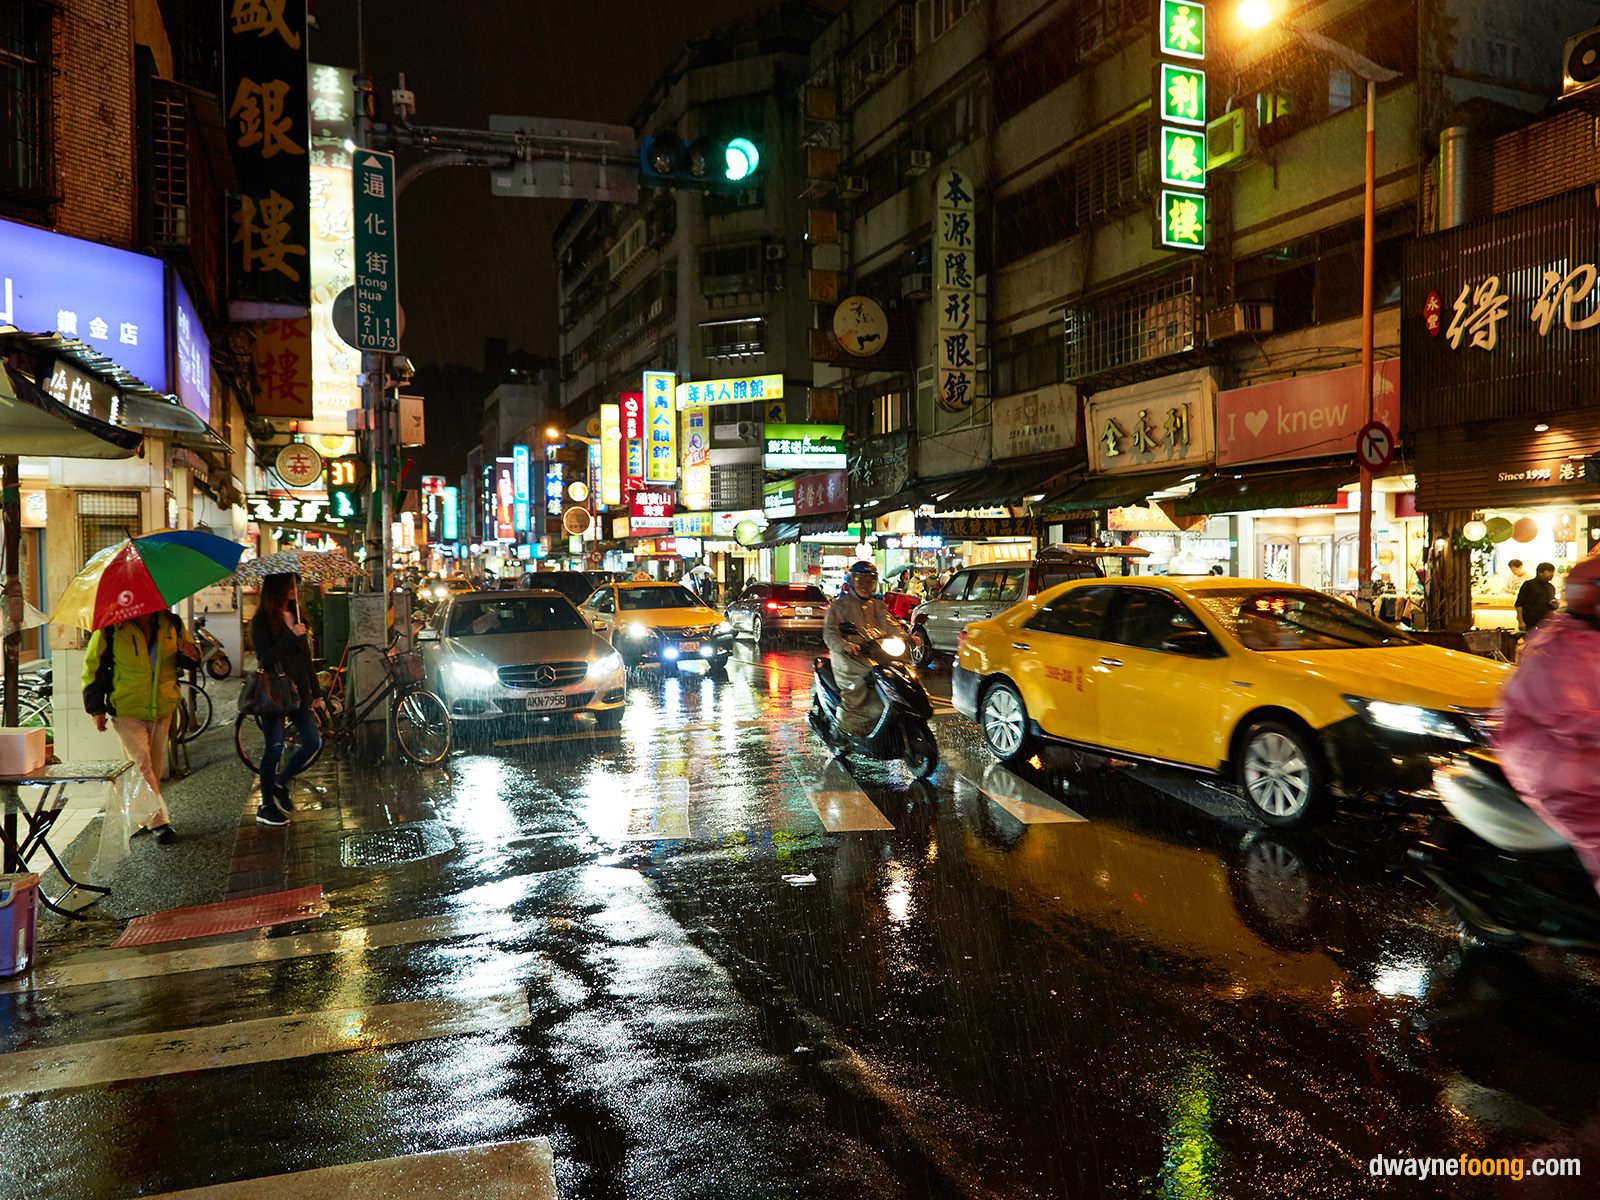 A view of Taipei City's street at night with rain.